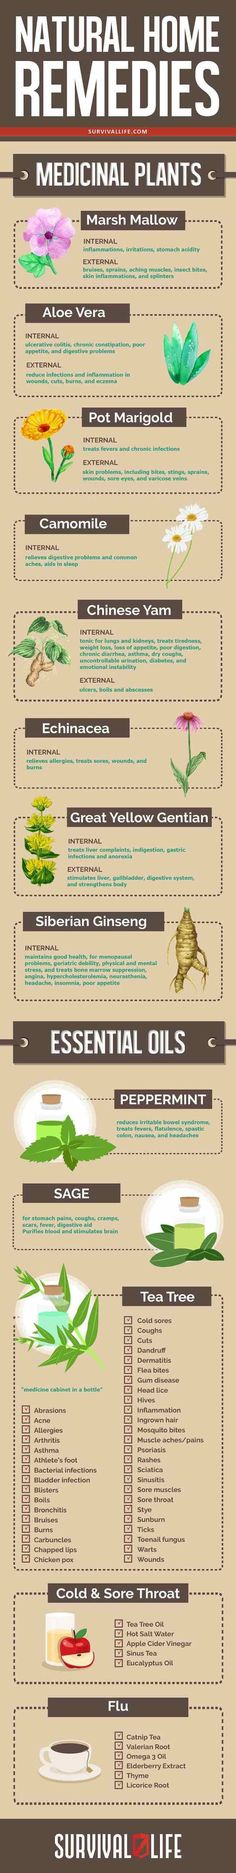 Medicinal Plants You Can Grow For Emergencies | DIY Home Remedies for Survival